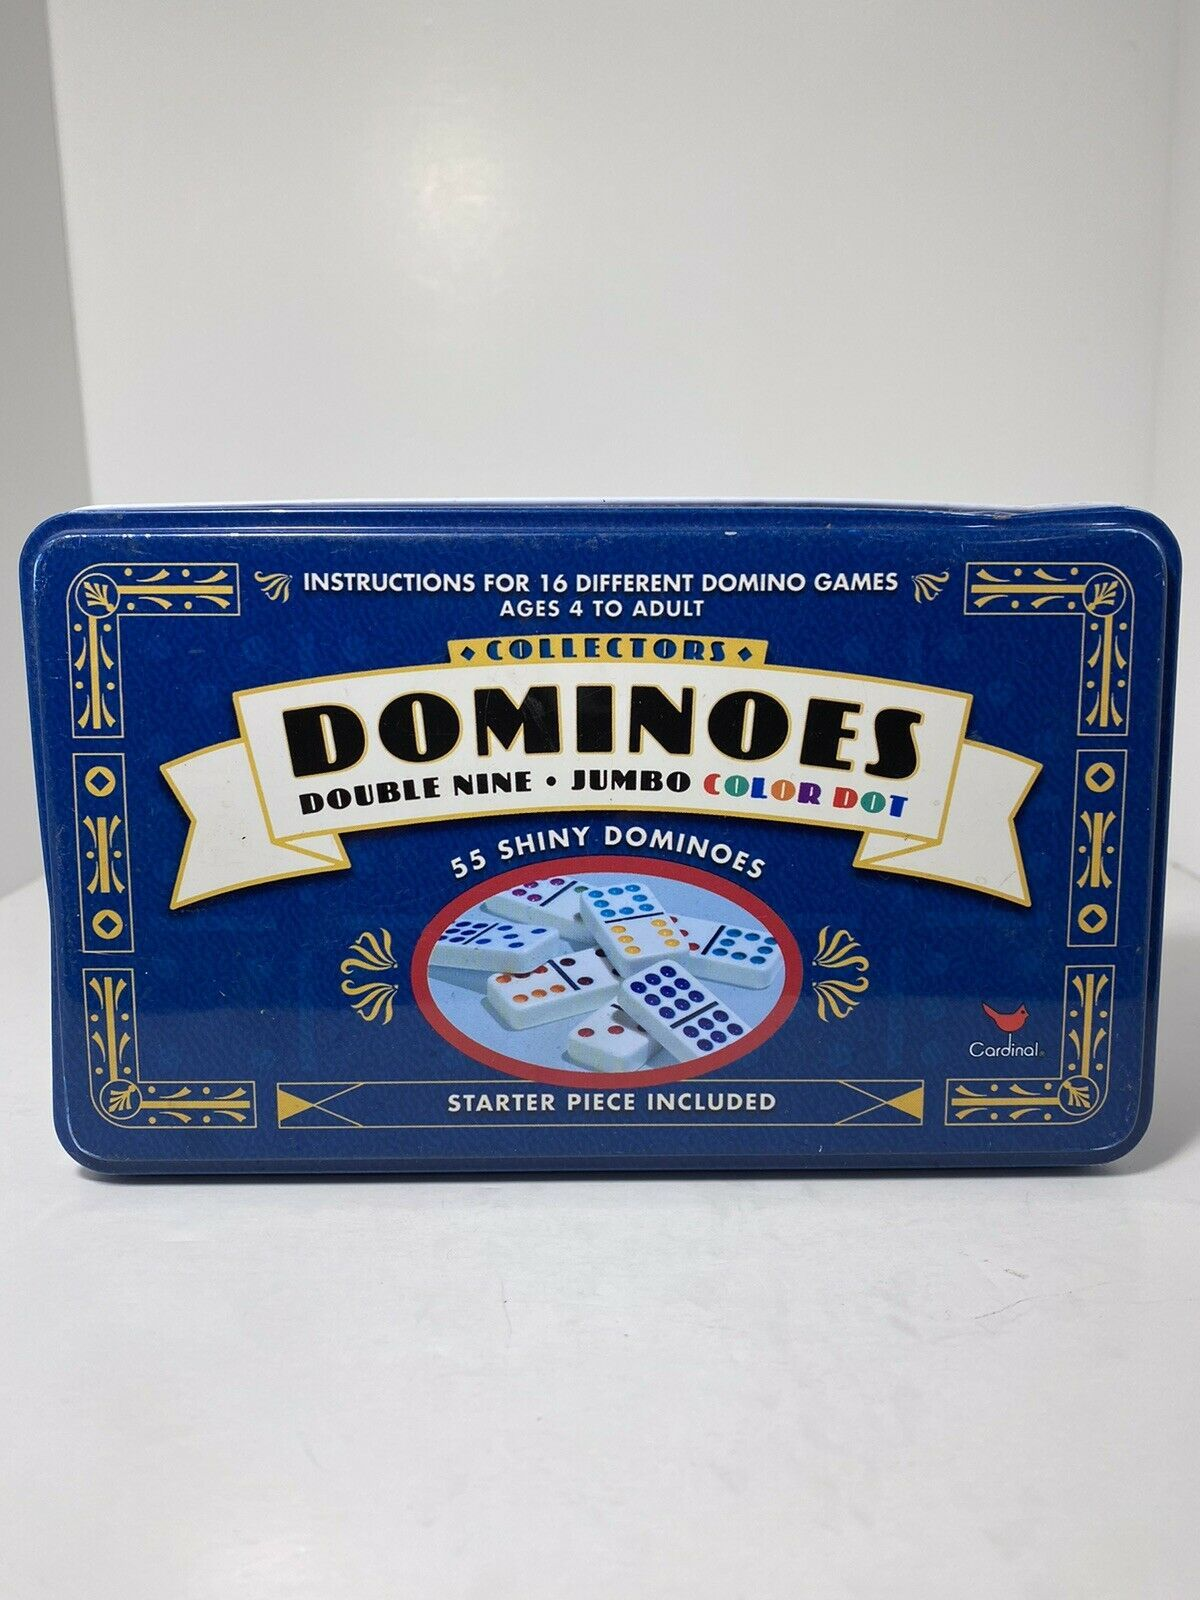 Cardinal Double 9 Color Dot Dominoes in Collectors Tin - 55 Pieces - $14.99